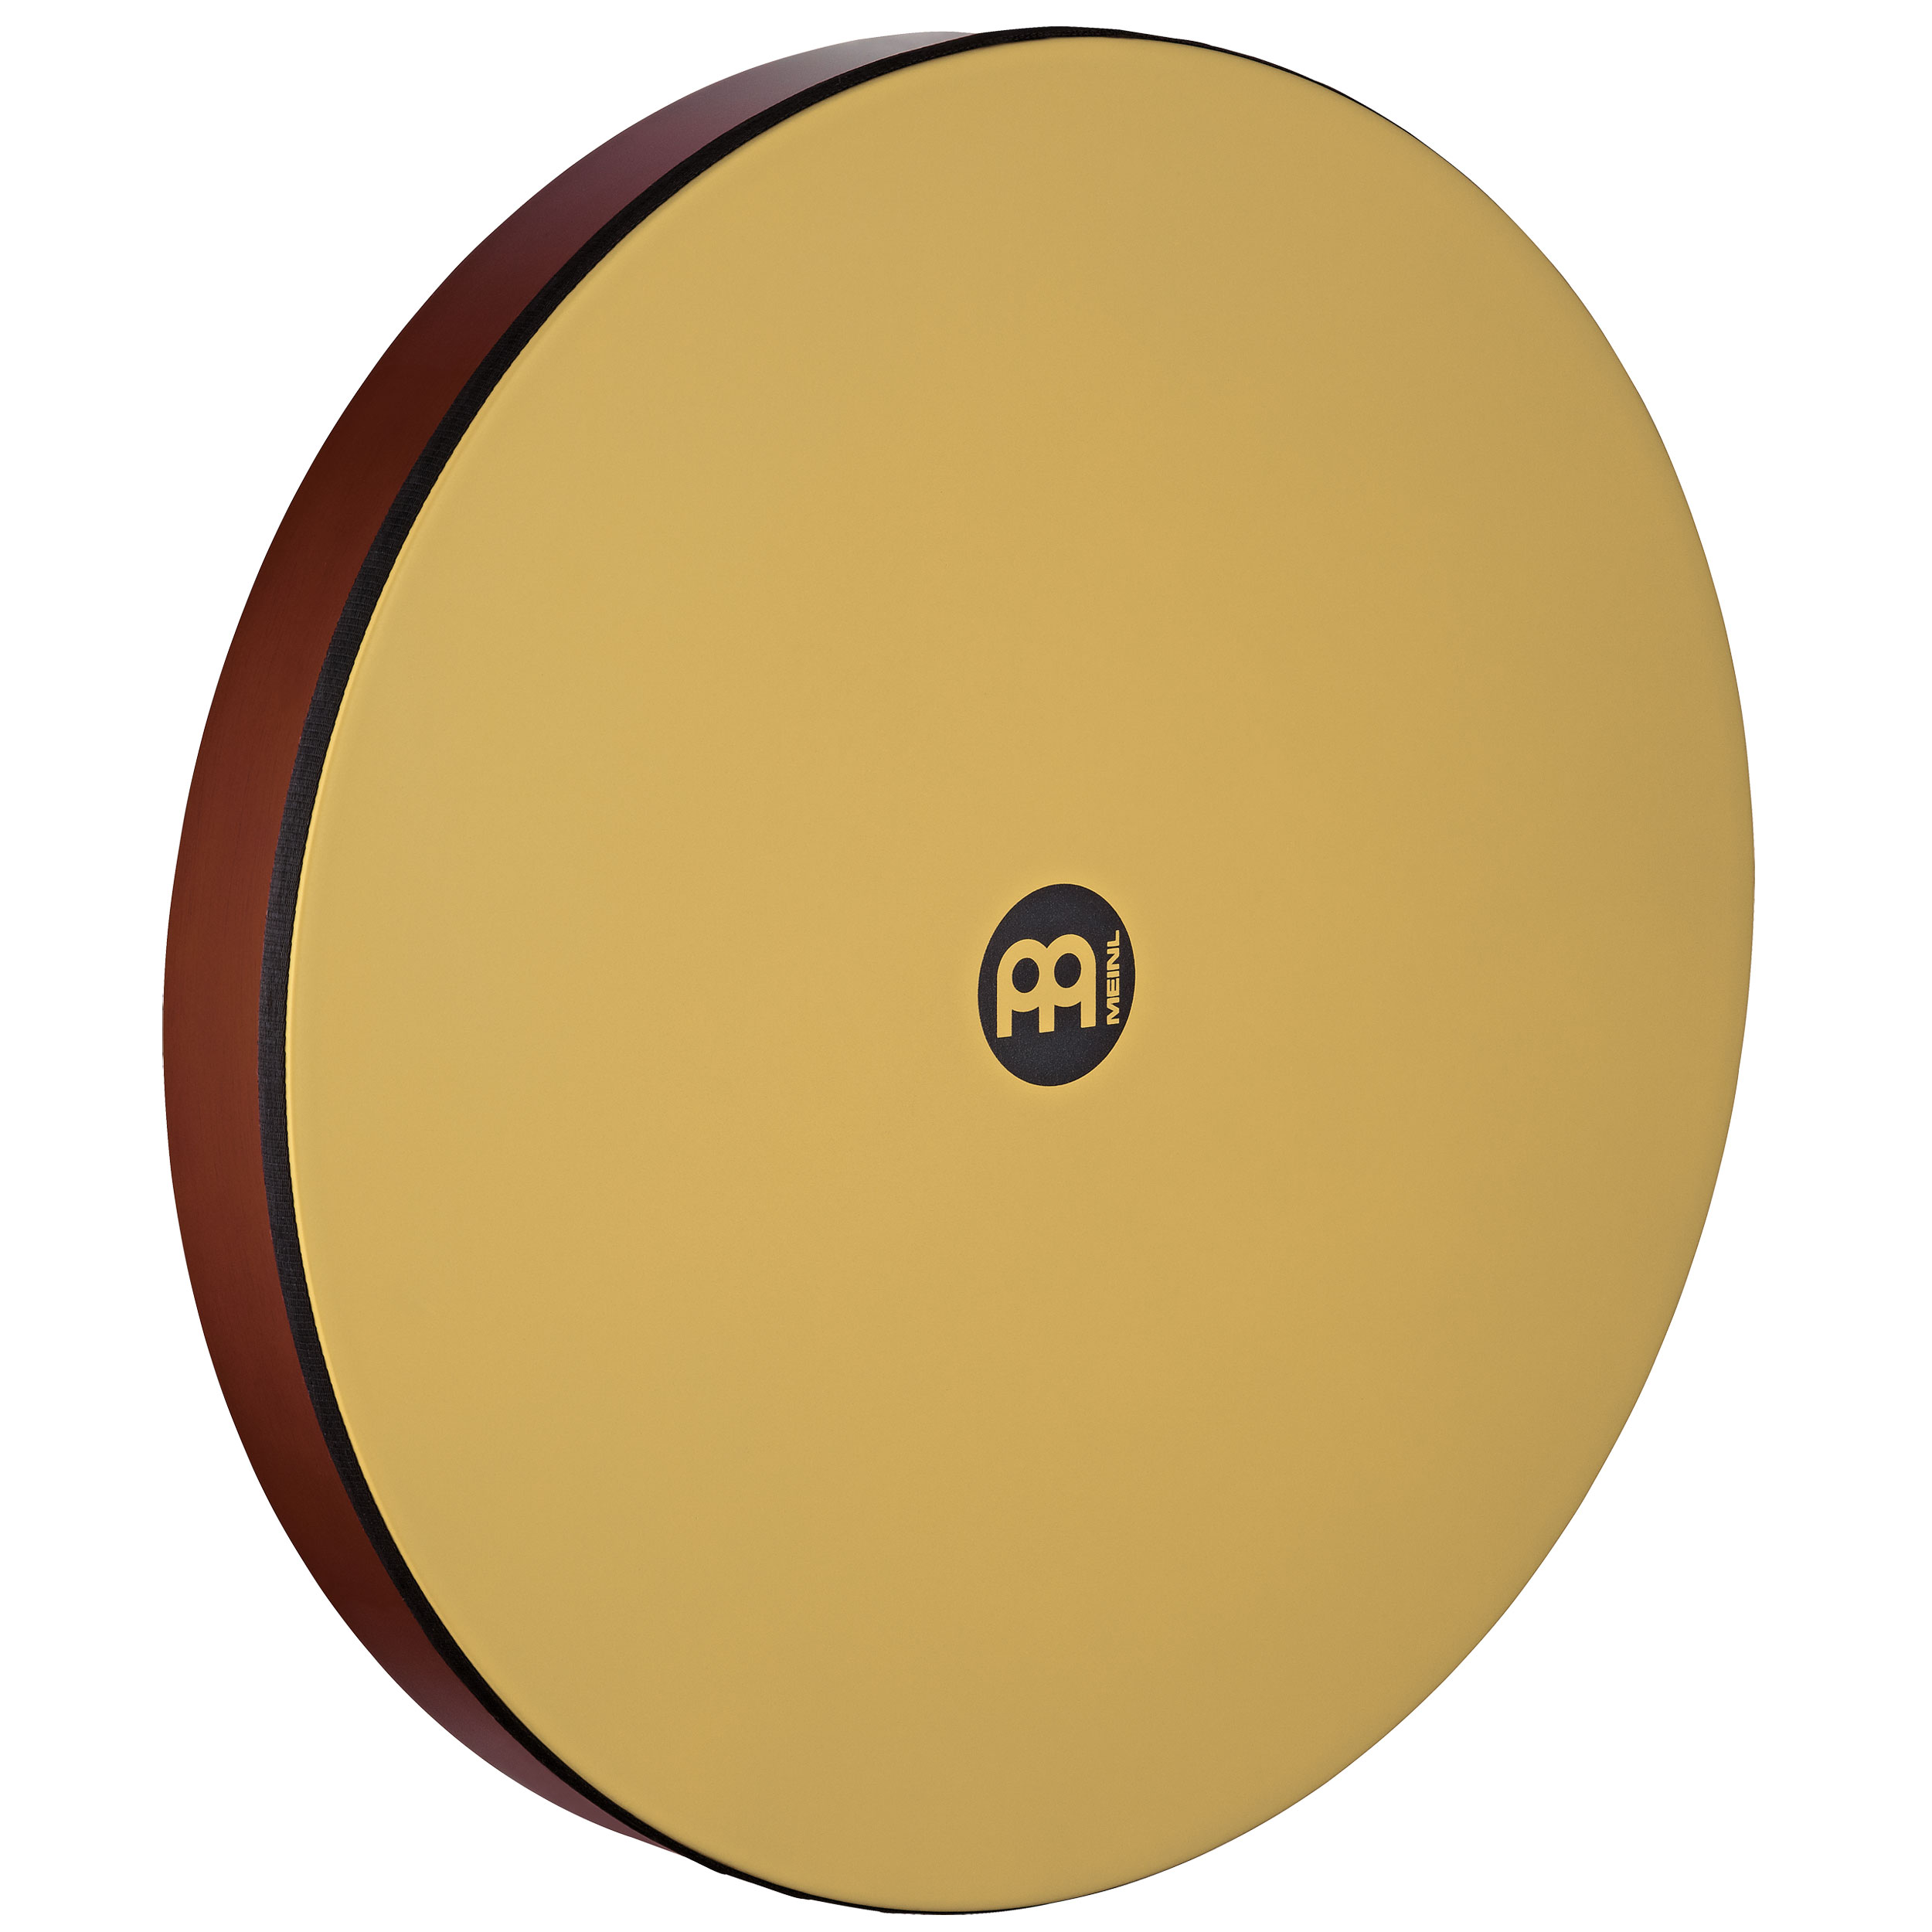 """Meinl 18"""" x 2.75"""" Hand Drum with Synthetic Head in African Brown Finish"""